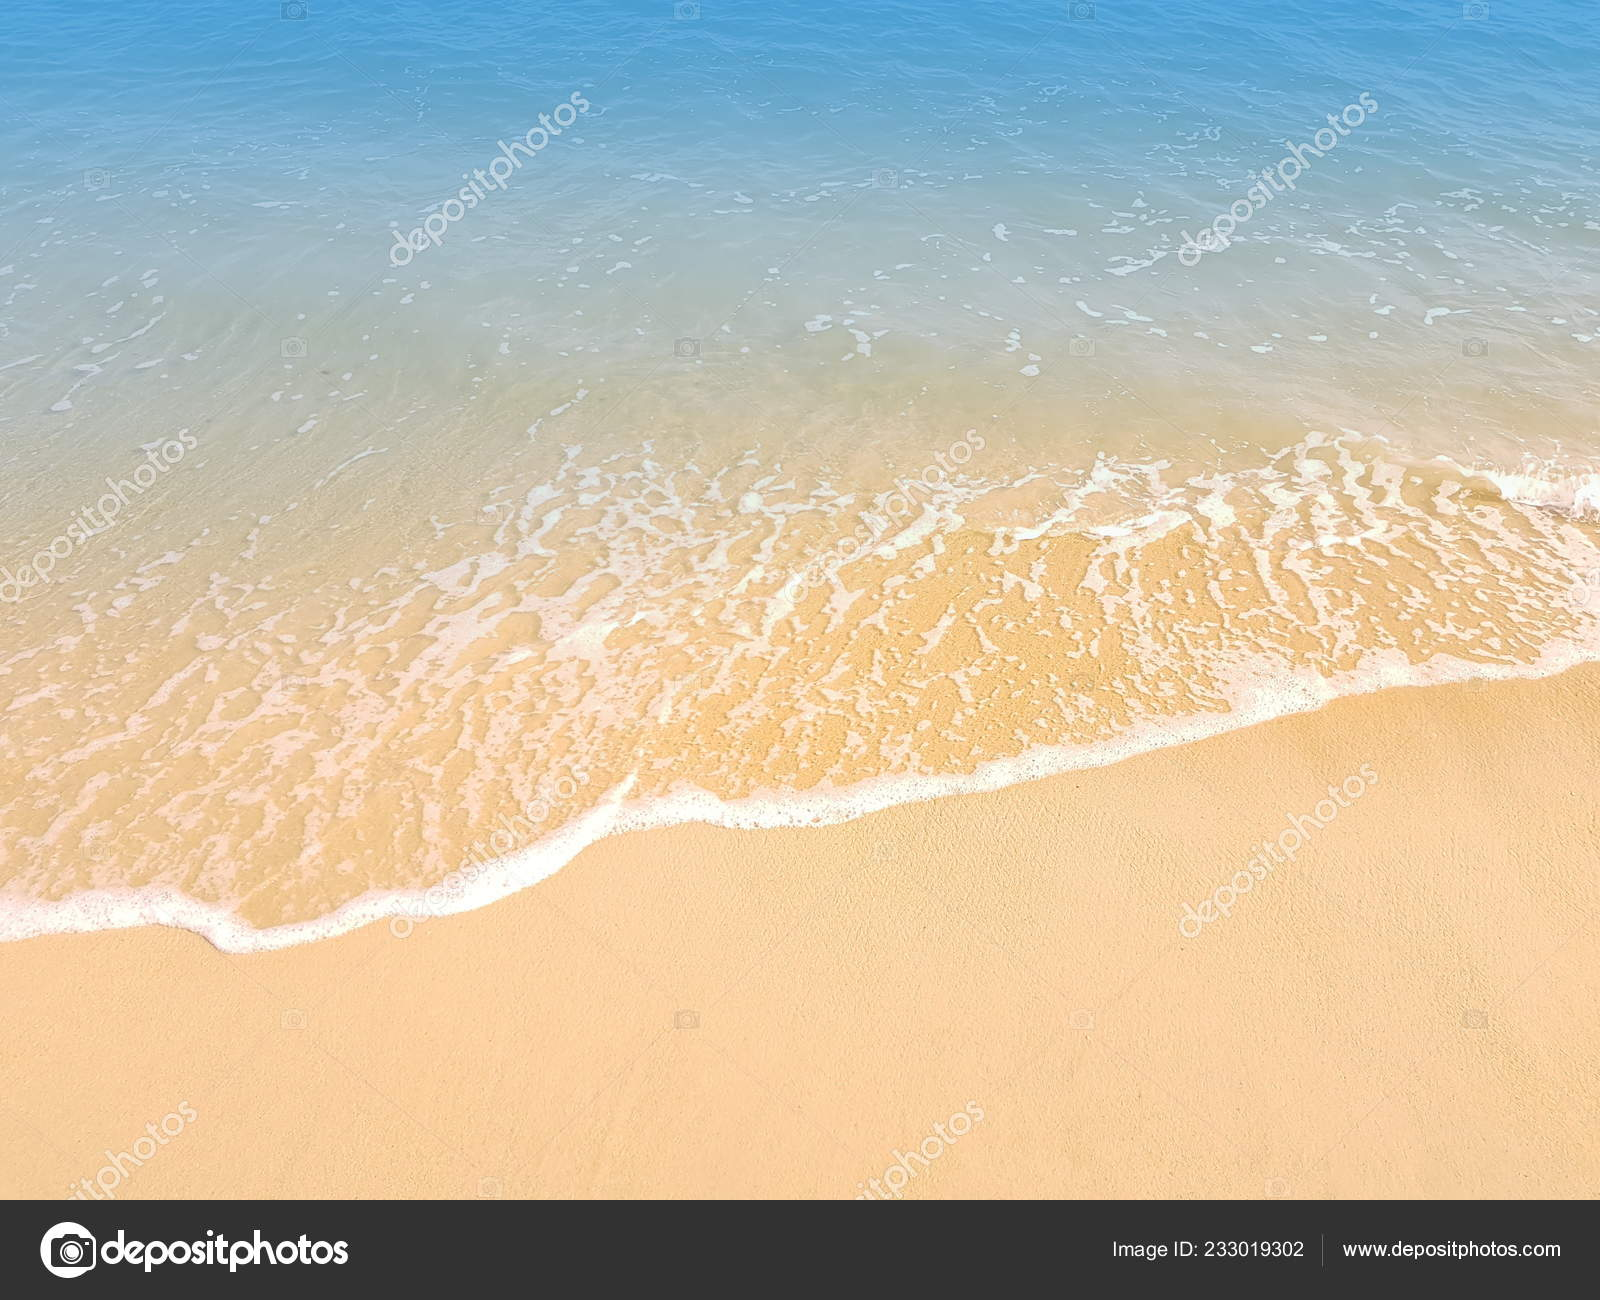 Seascape beach sand, turquoise water